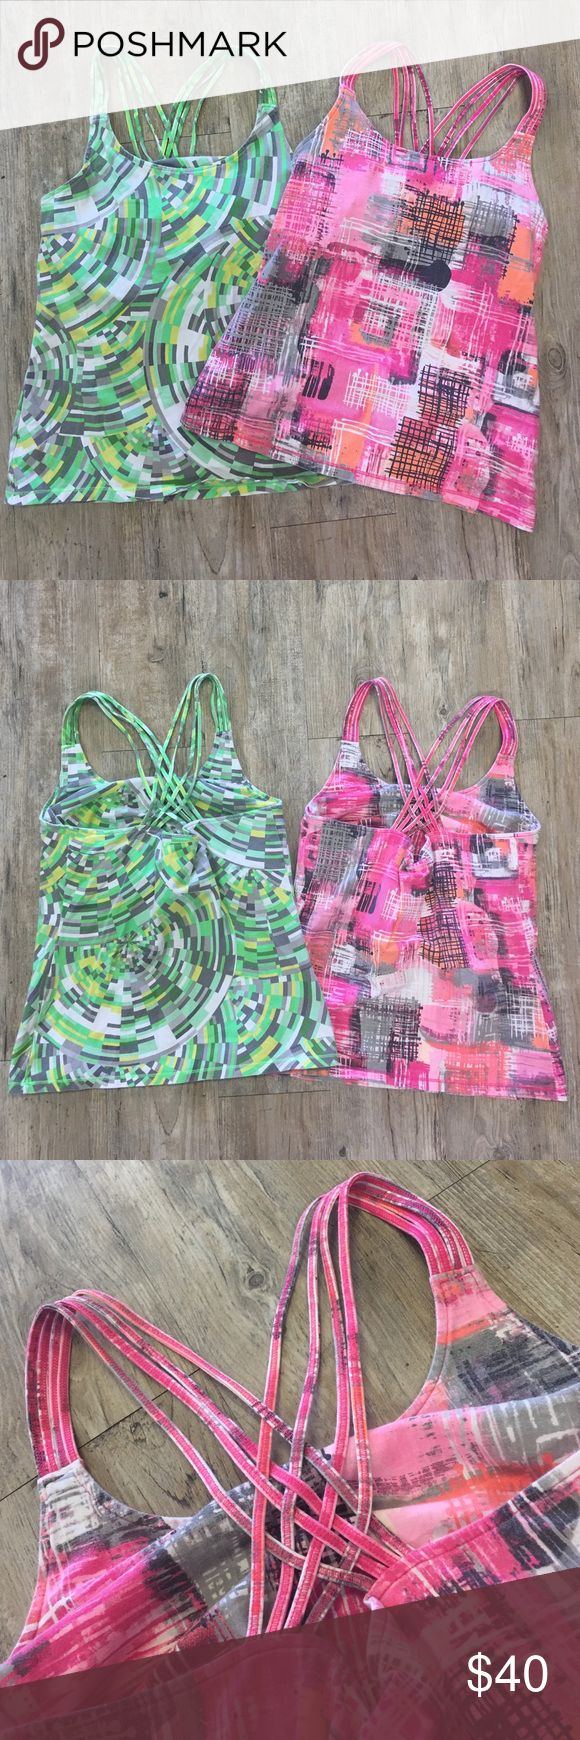 CALVIN KLEIN Workout Tops, Pre-Made Bundle Built in bra with lift support, comfortable workout tops. Gently worn but lots of life left. Calvin Klein Tops